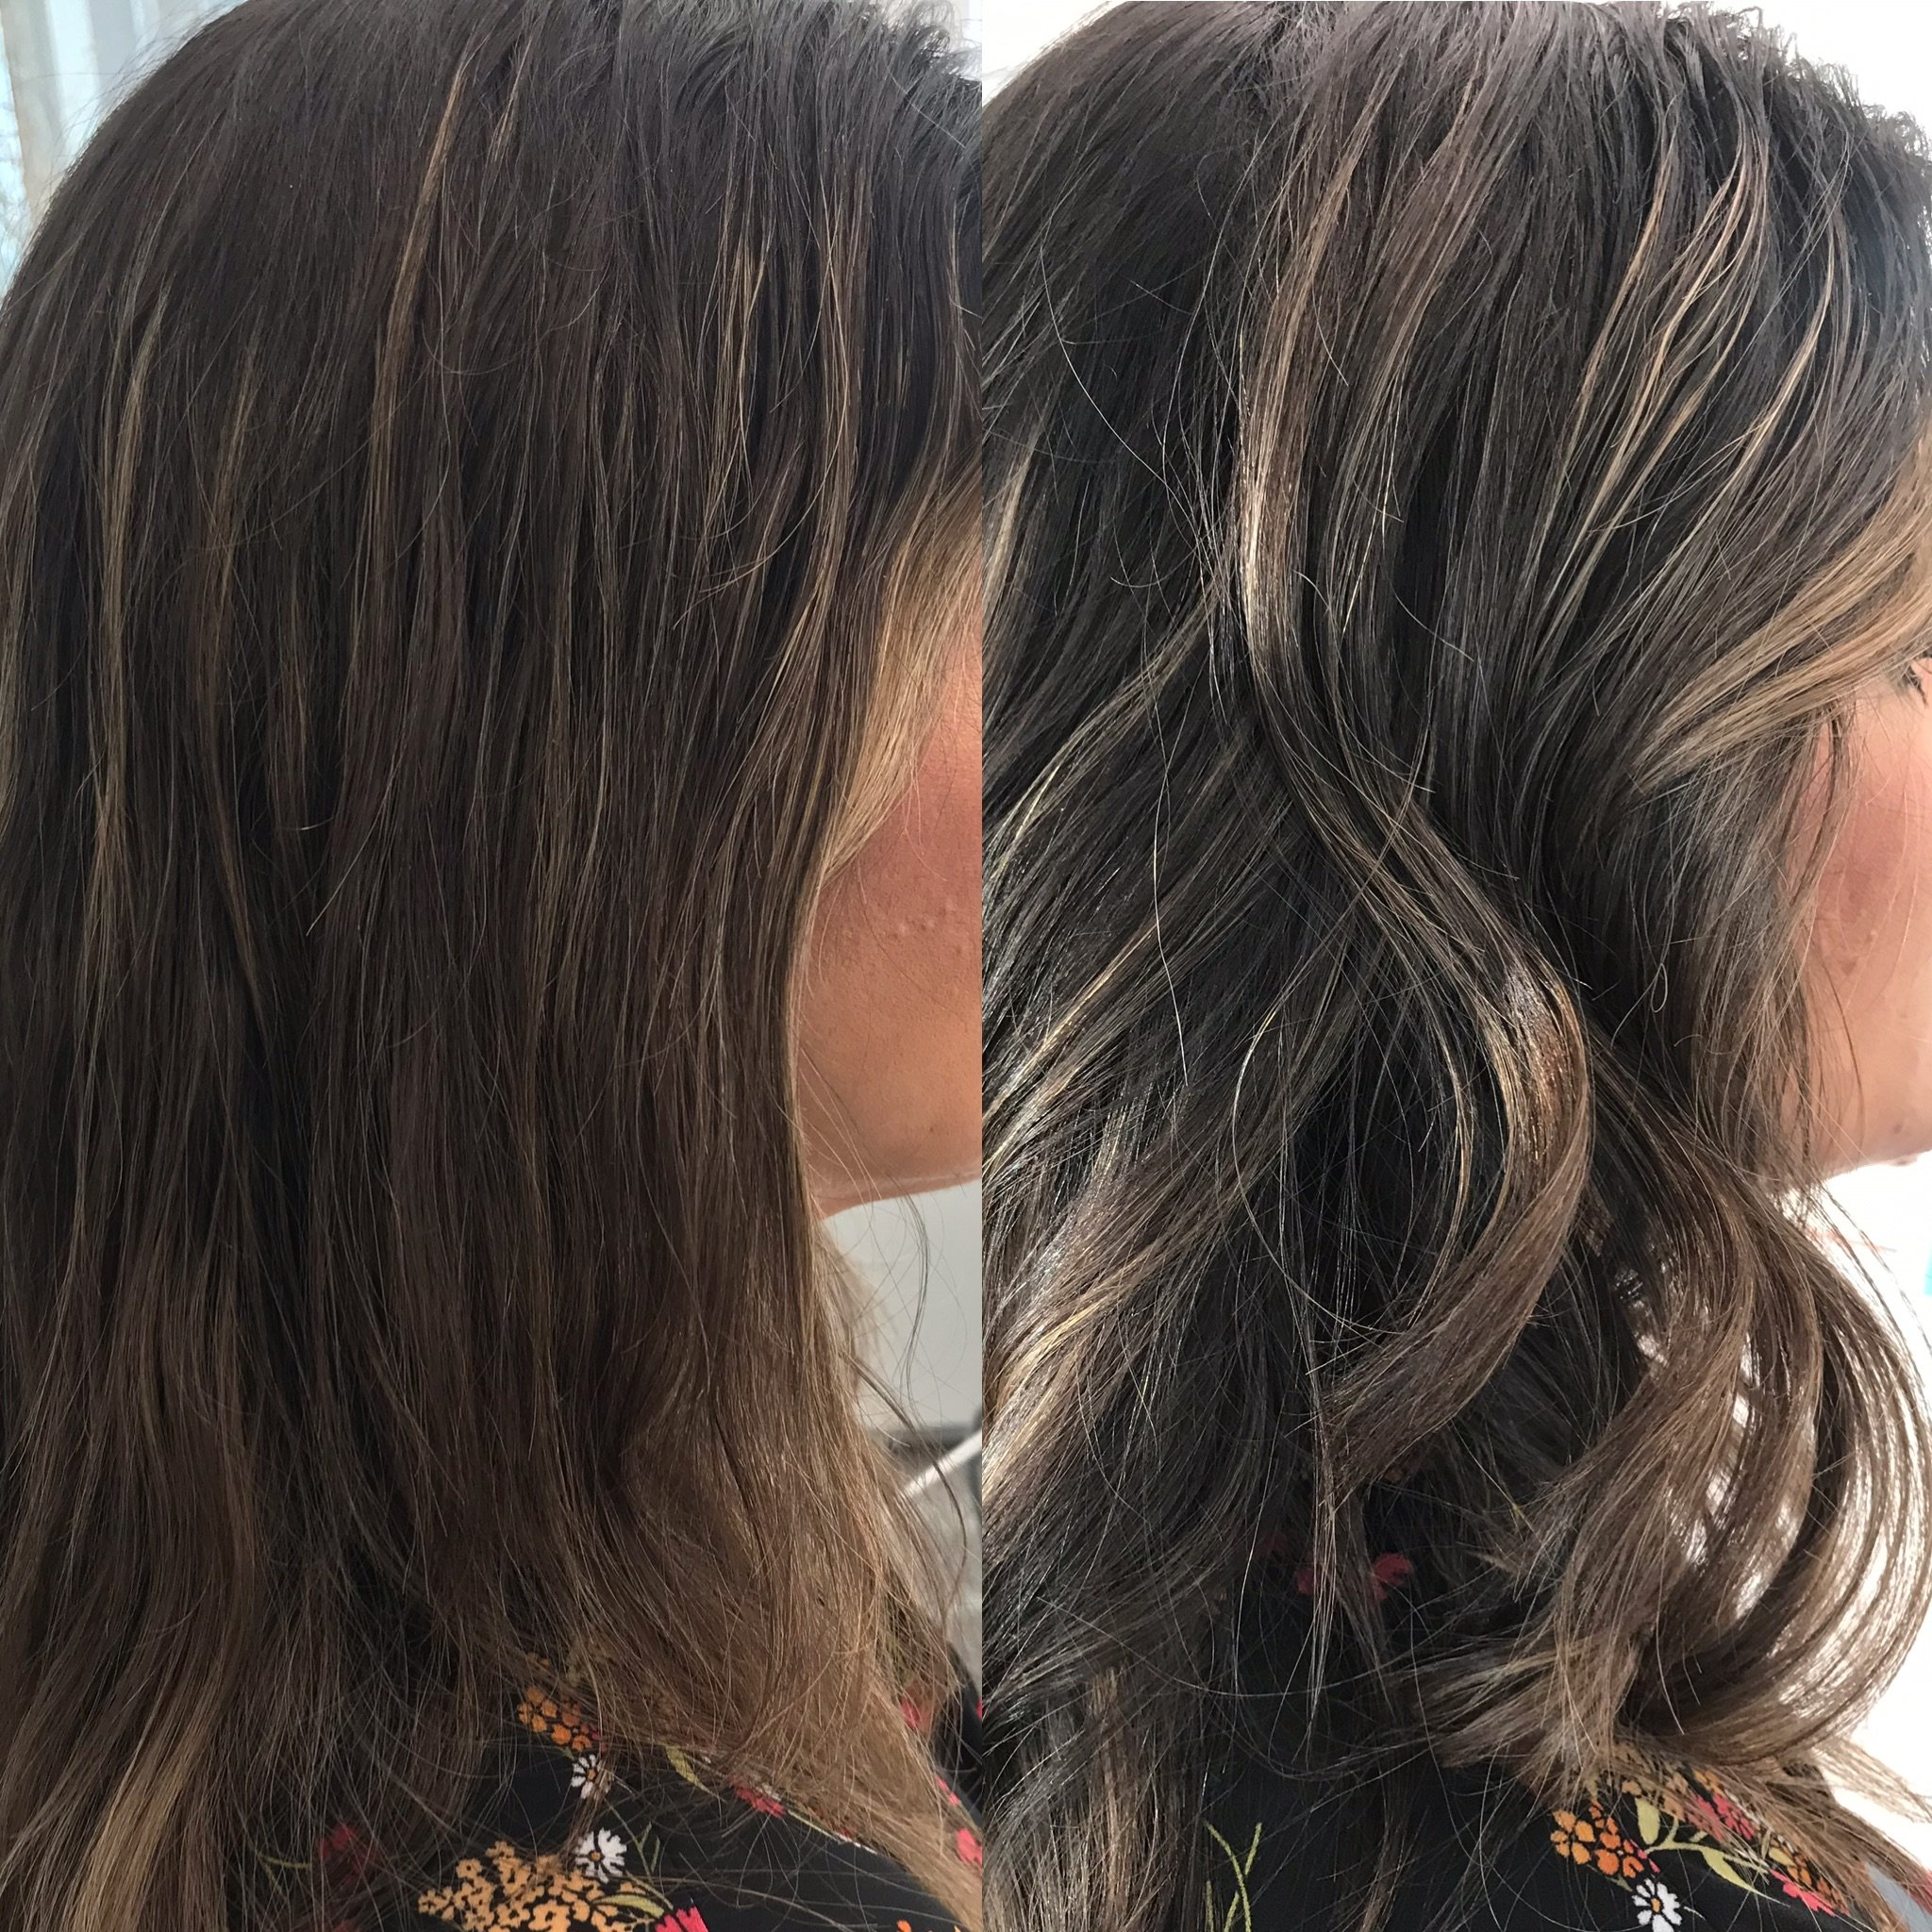 A before and after using the Bioprogramming Repronizer and Hairbeauron.